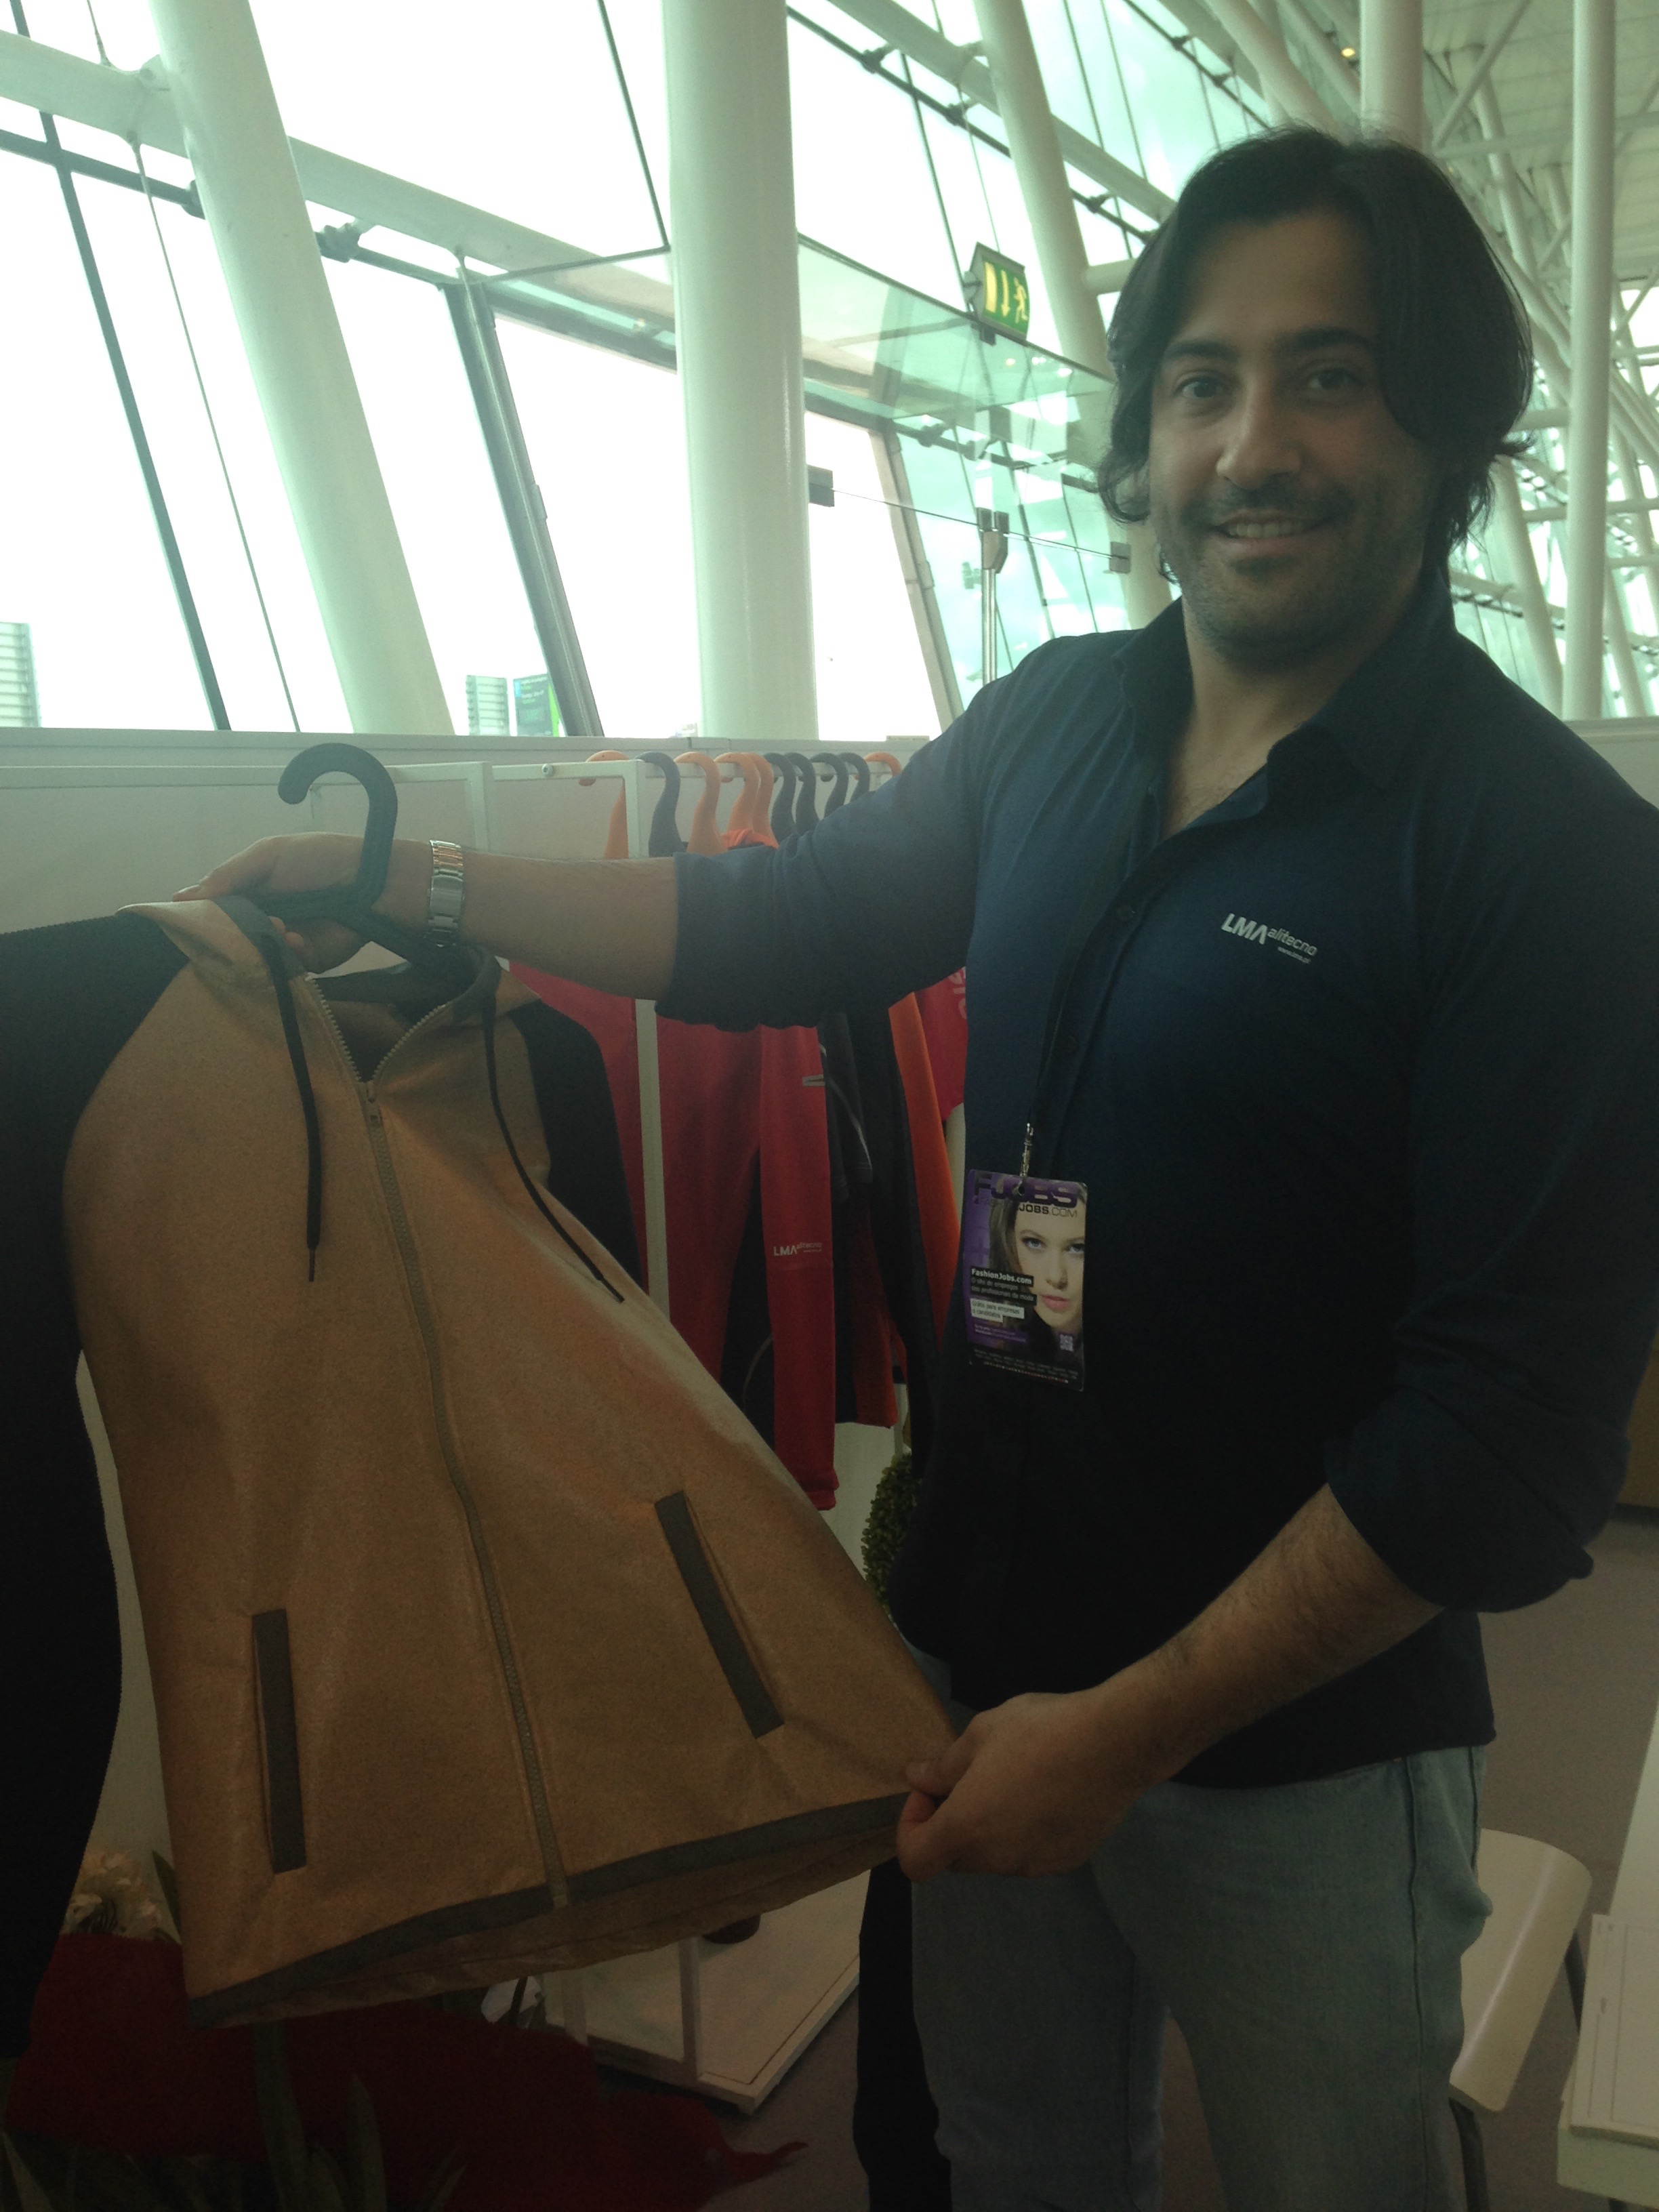 Luis Sousa Dias, of LMA, is holding up a jacket made of a cork based fabric. © Elizia Volkmann